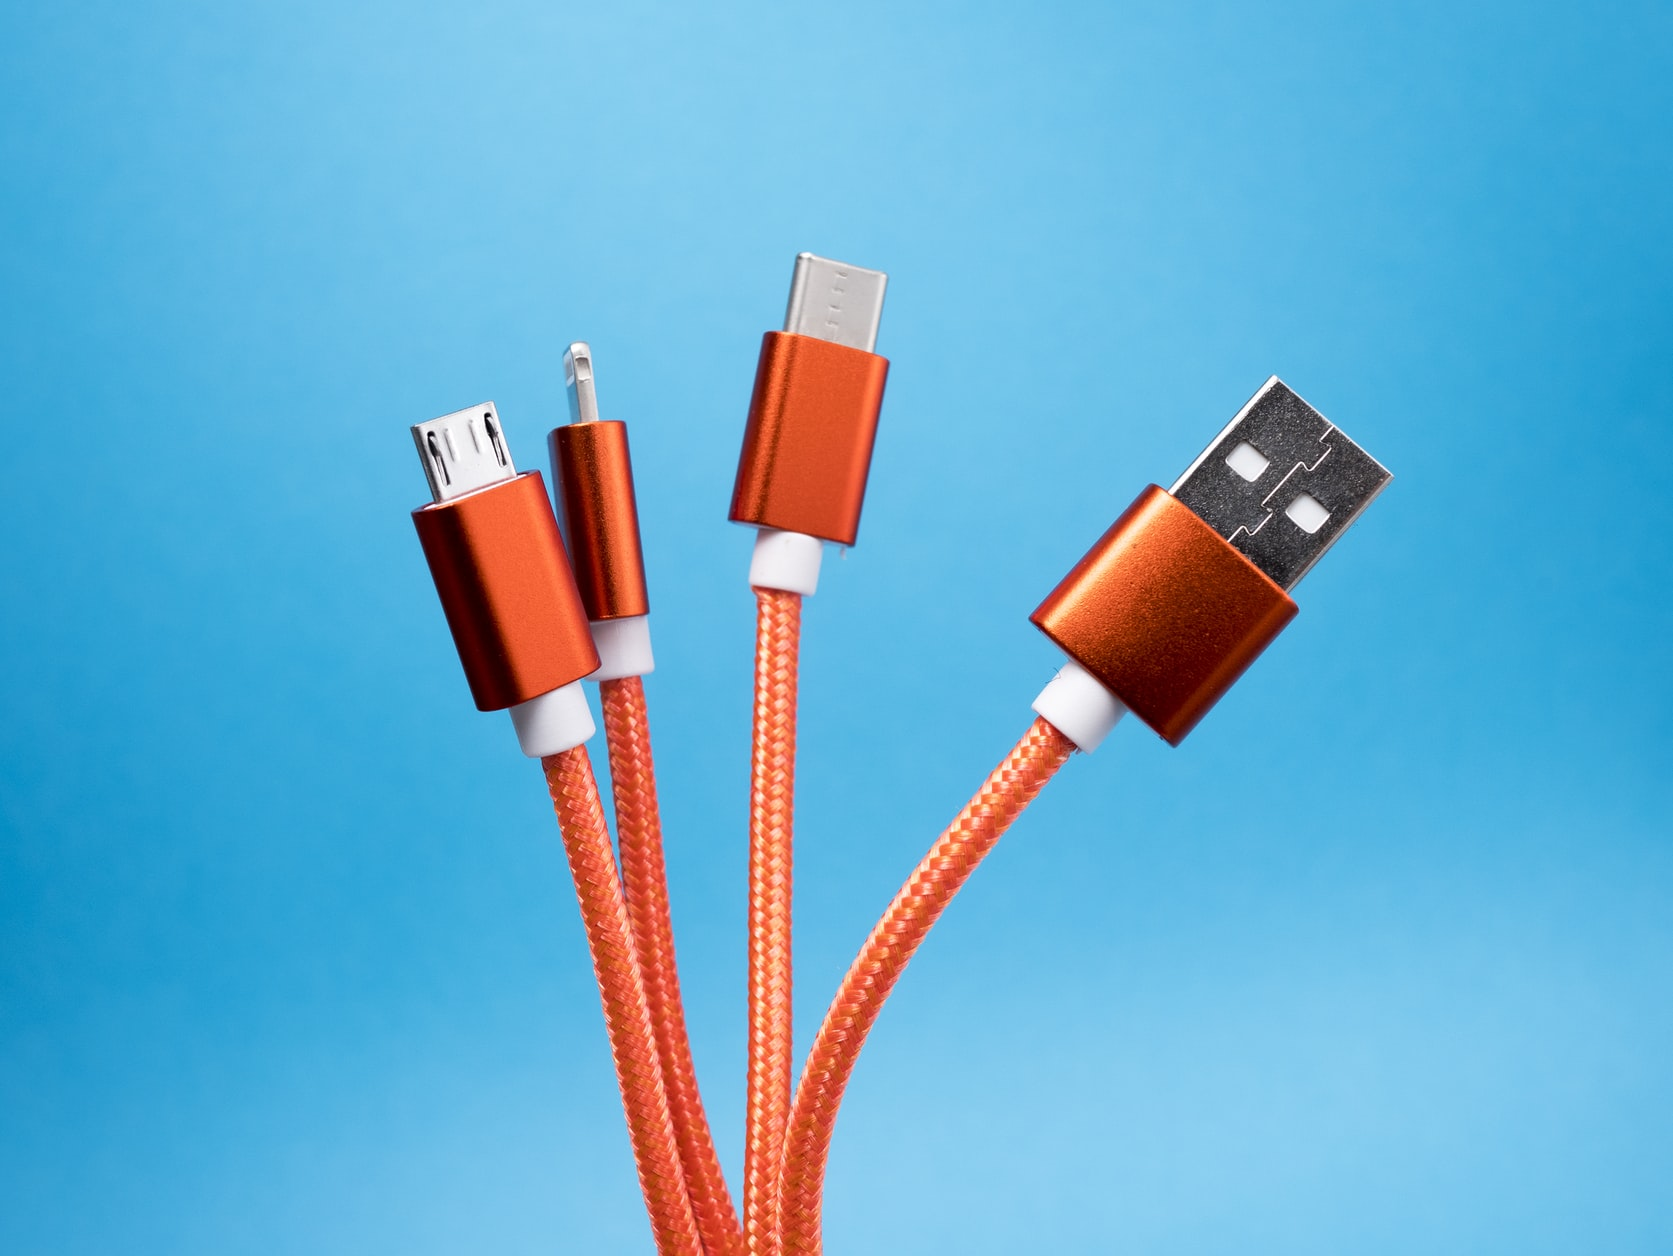 A group of orange charging cables against a blue background